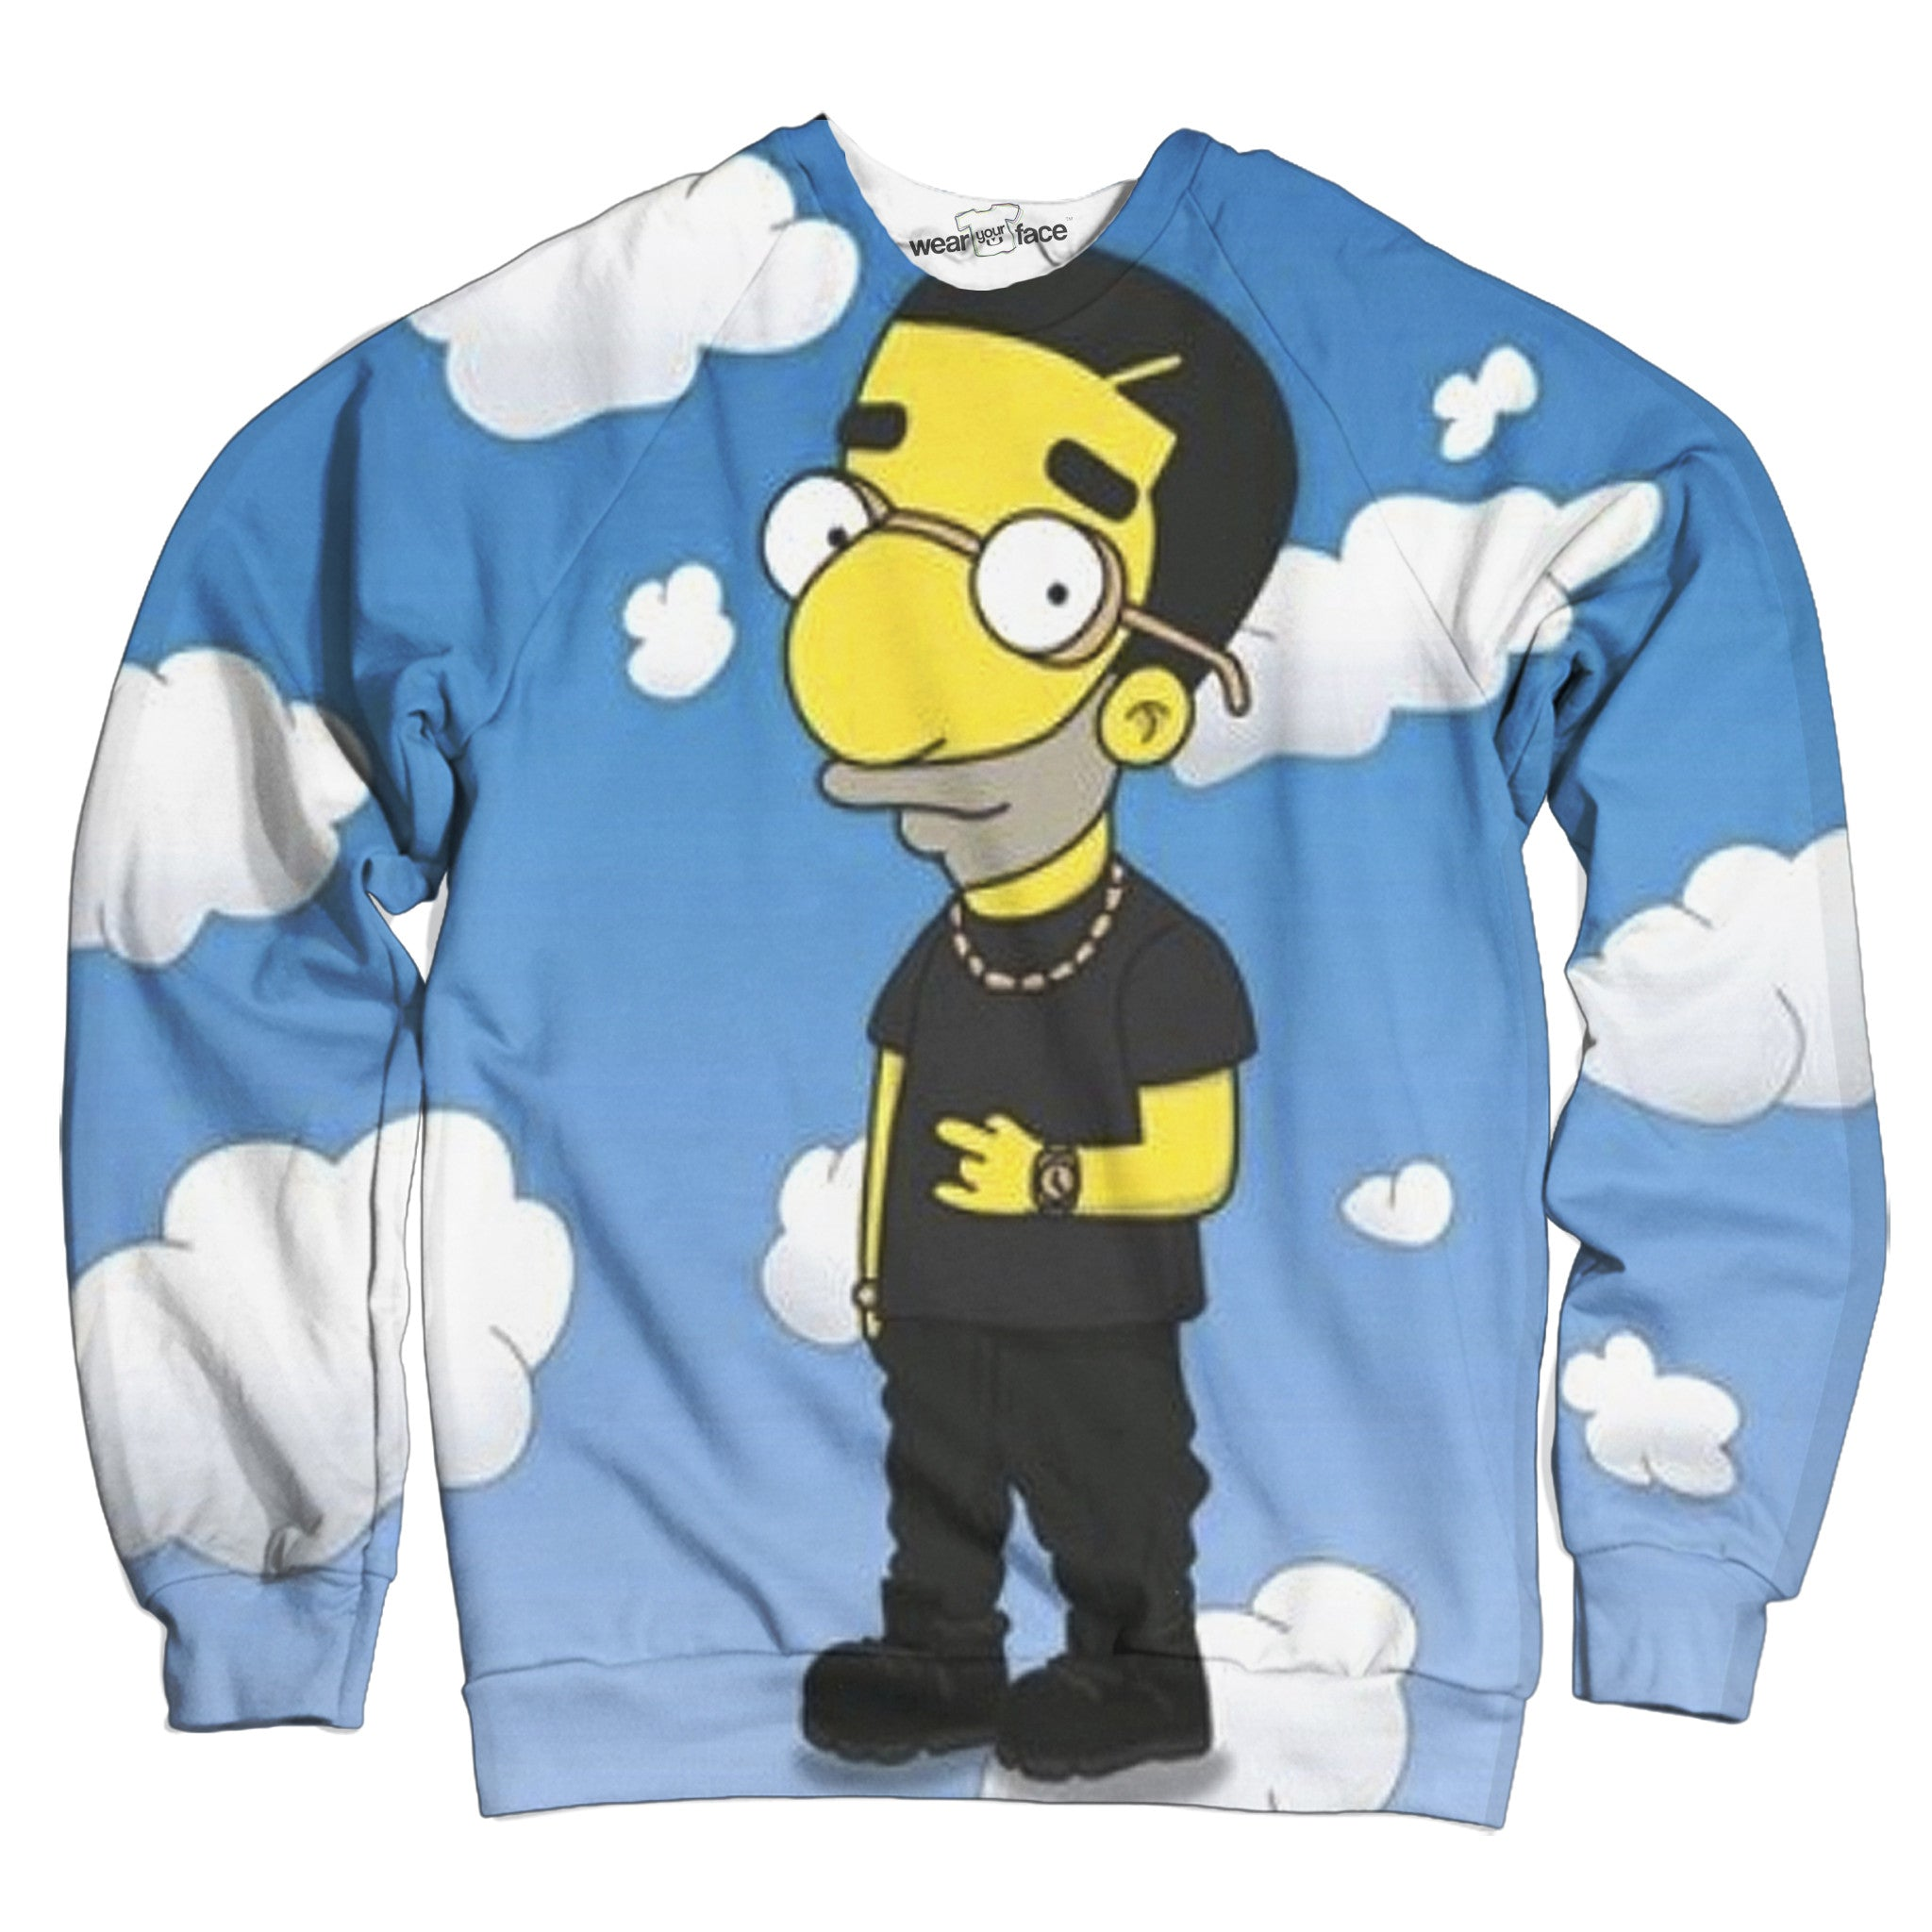 The Drizzy Milhouse Sweatshirt